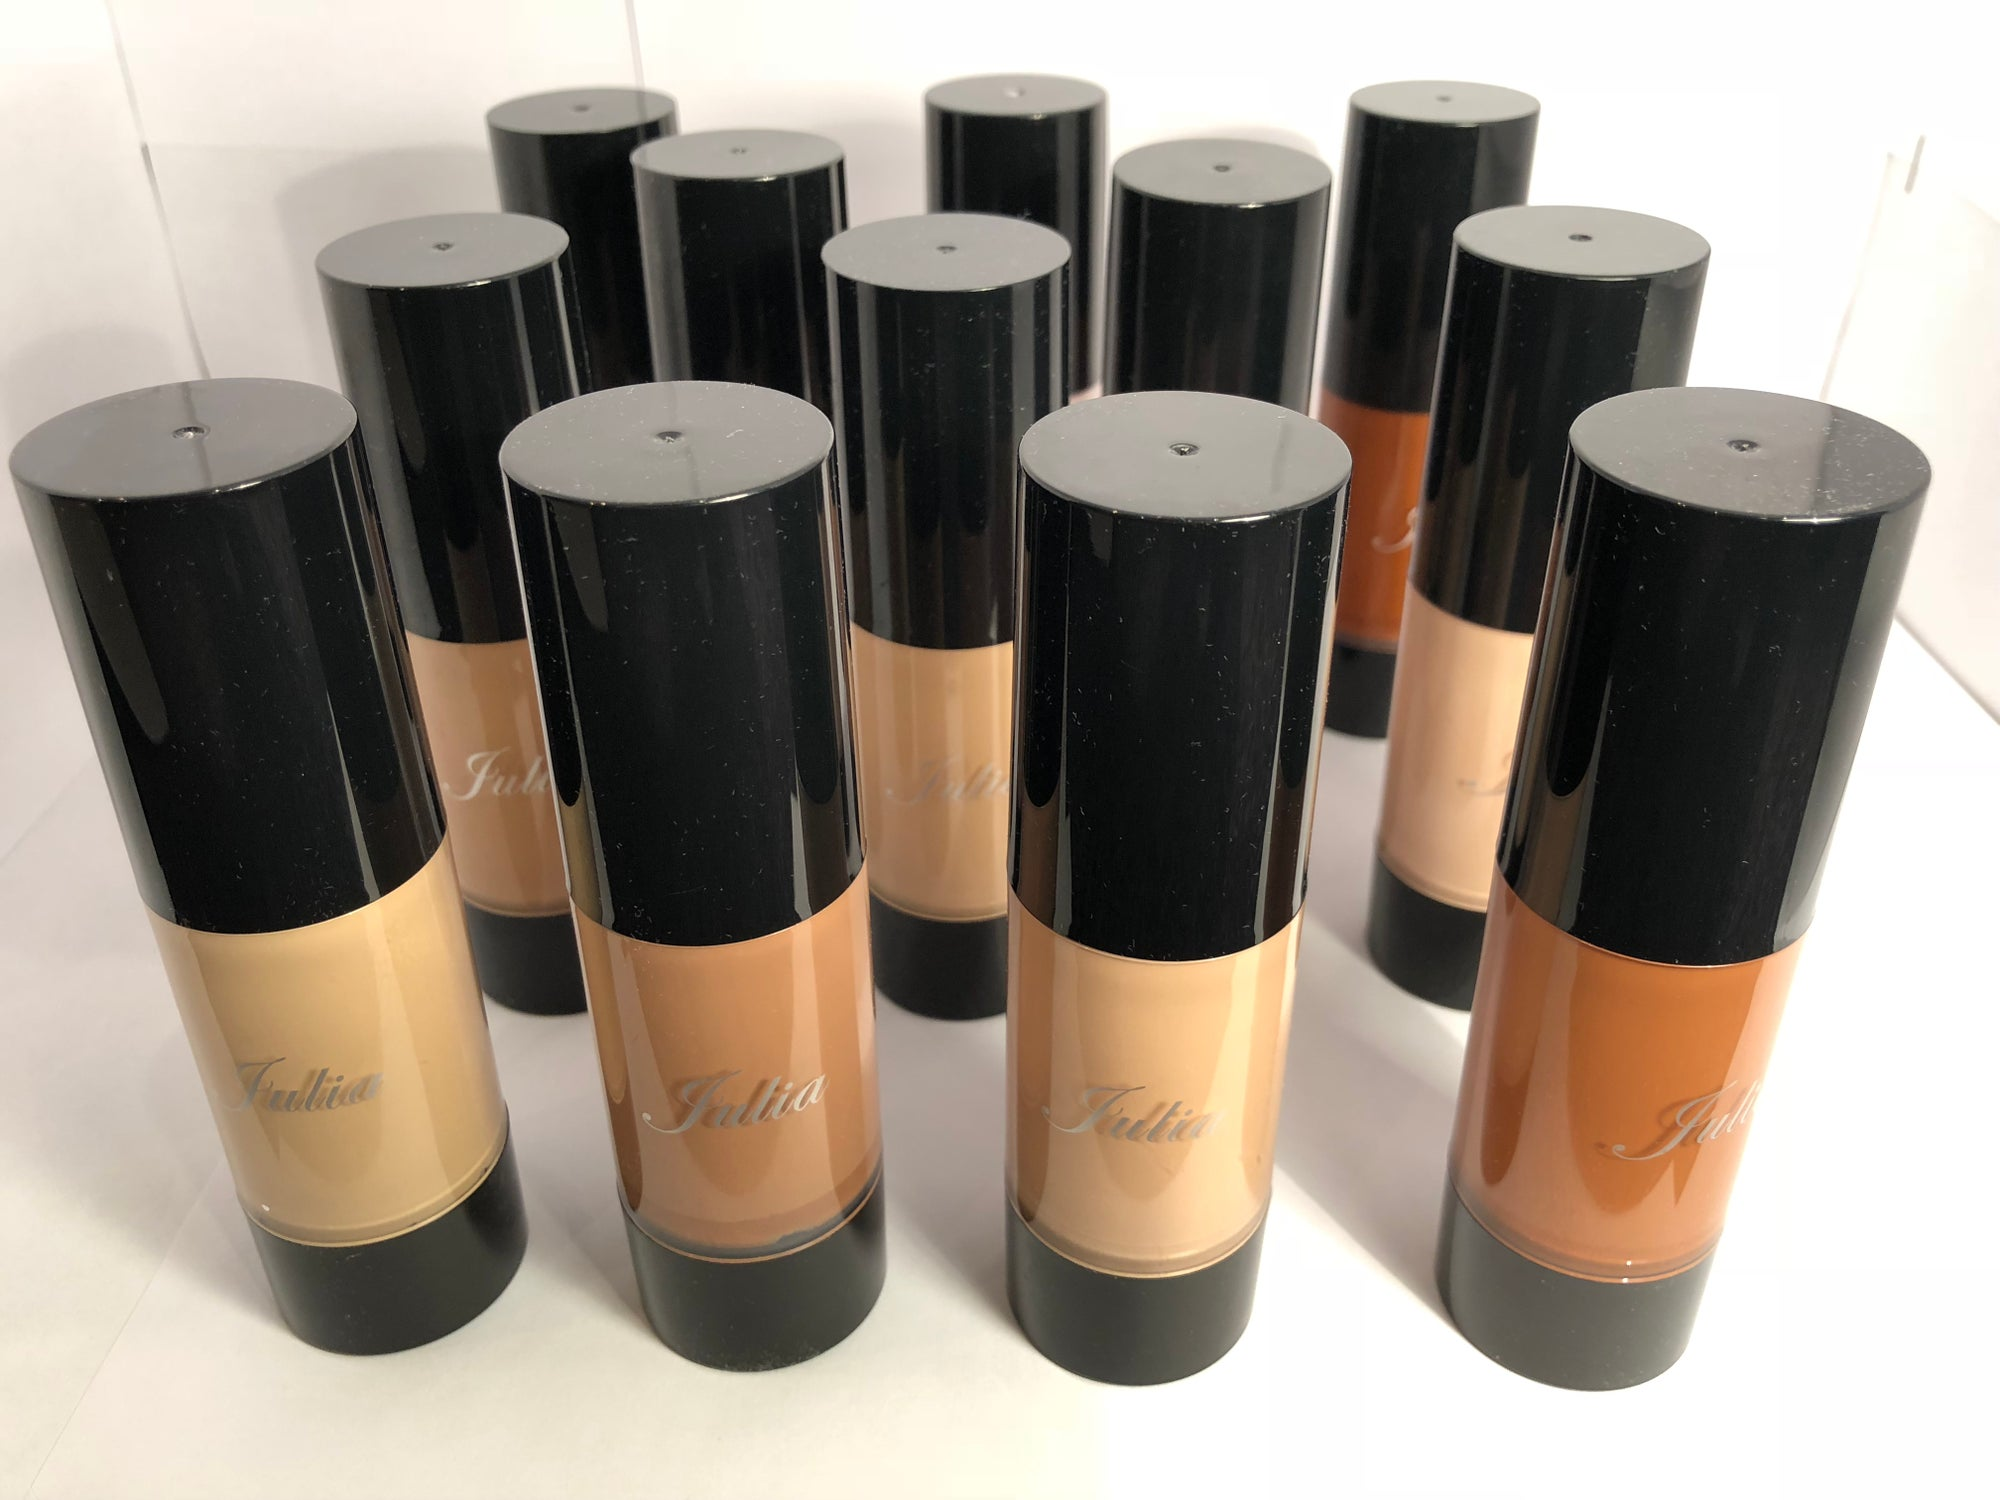 Image of Julia Long Lasting Glowing Moisturizing Full Coverage Foundation